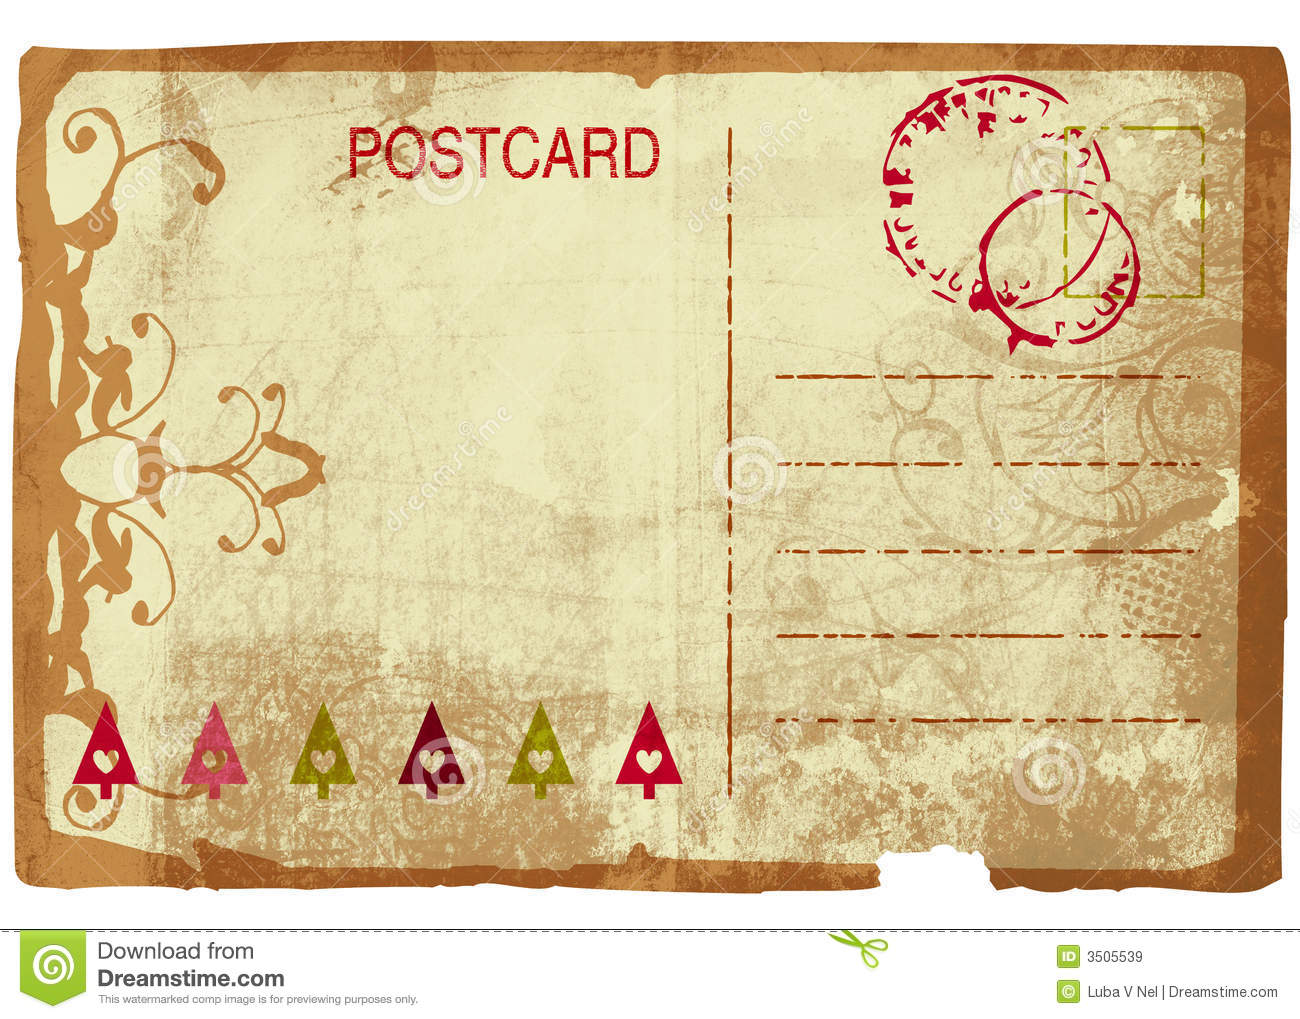 Grunge Christmas Post Card Royalty Free Stock Images - Image: 3505539